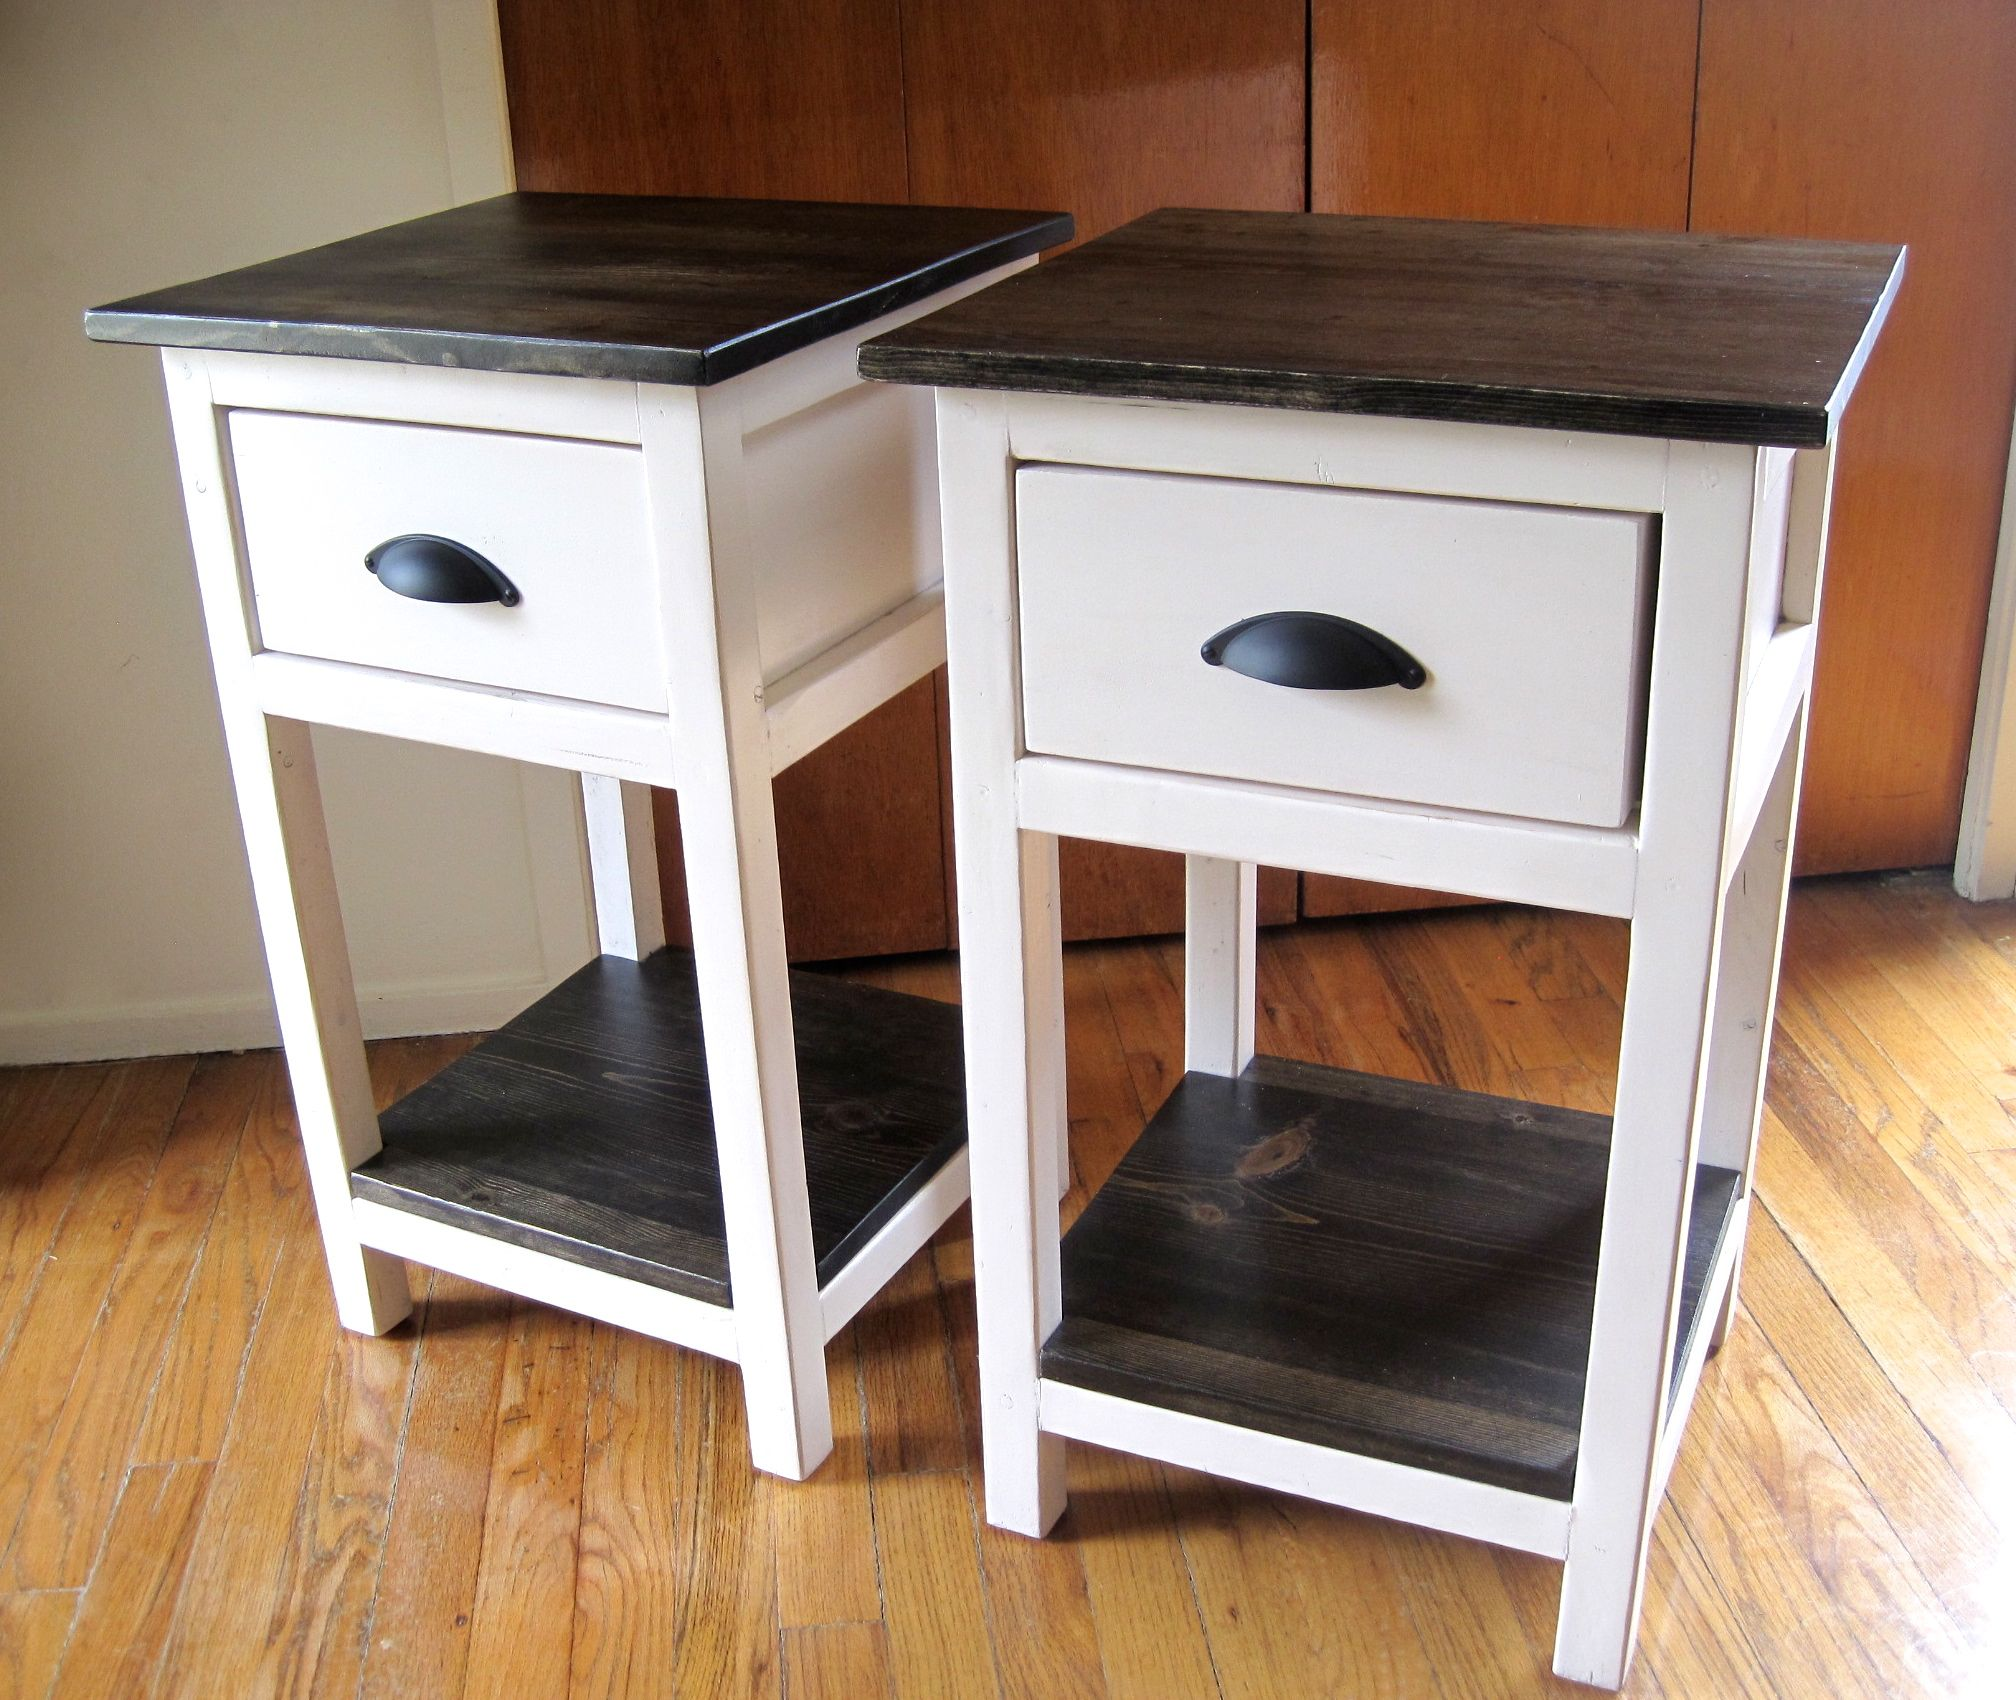 Ana white build a mini farmhouse bedside table plans for Simple nightstand designs